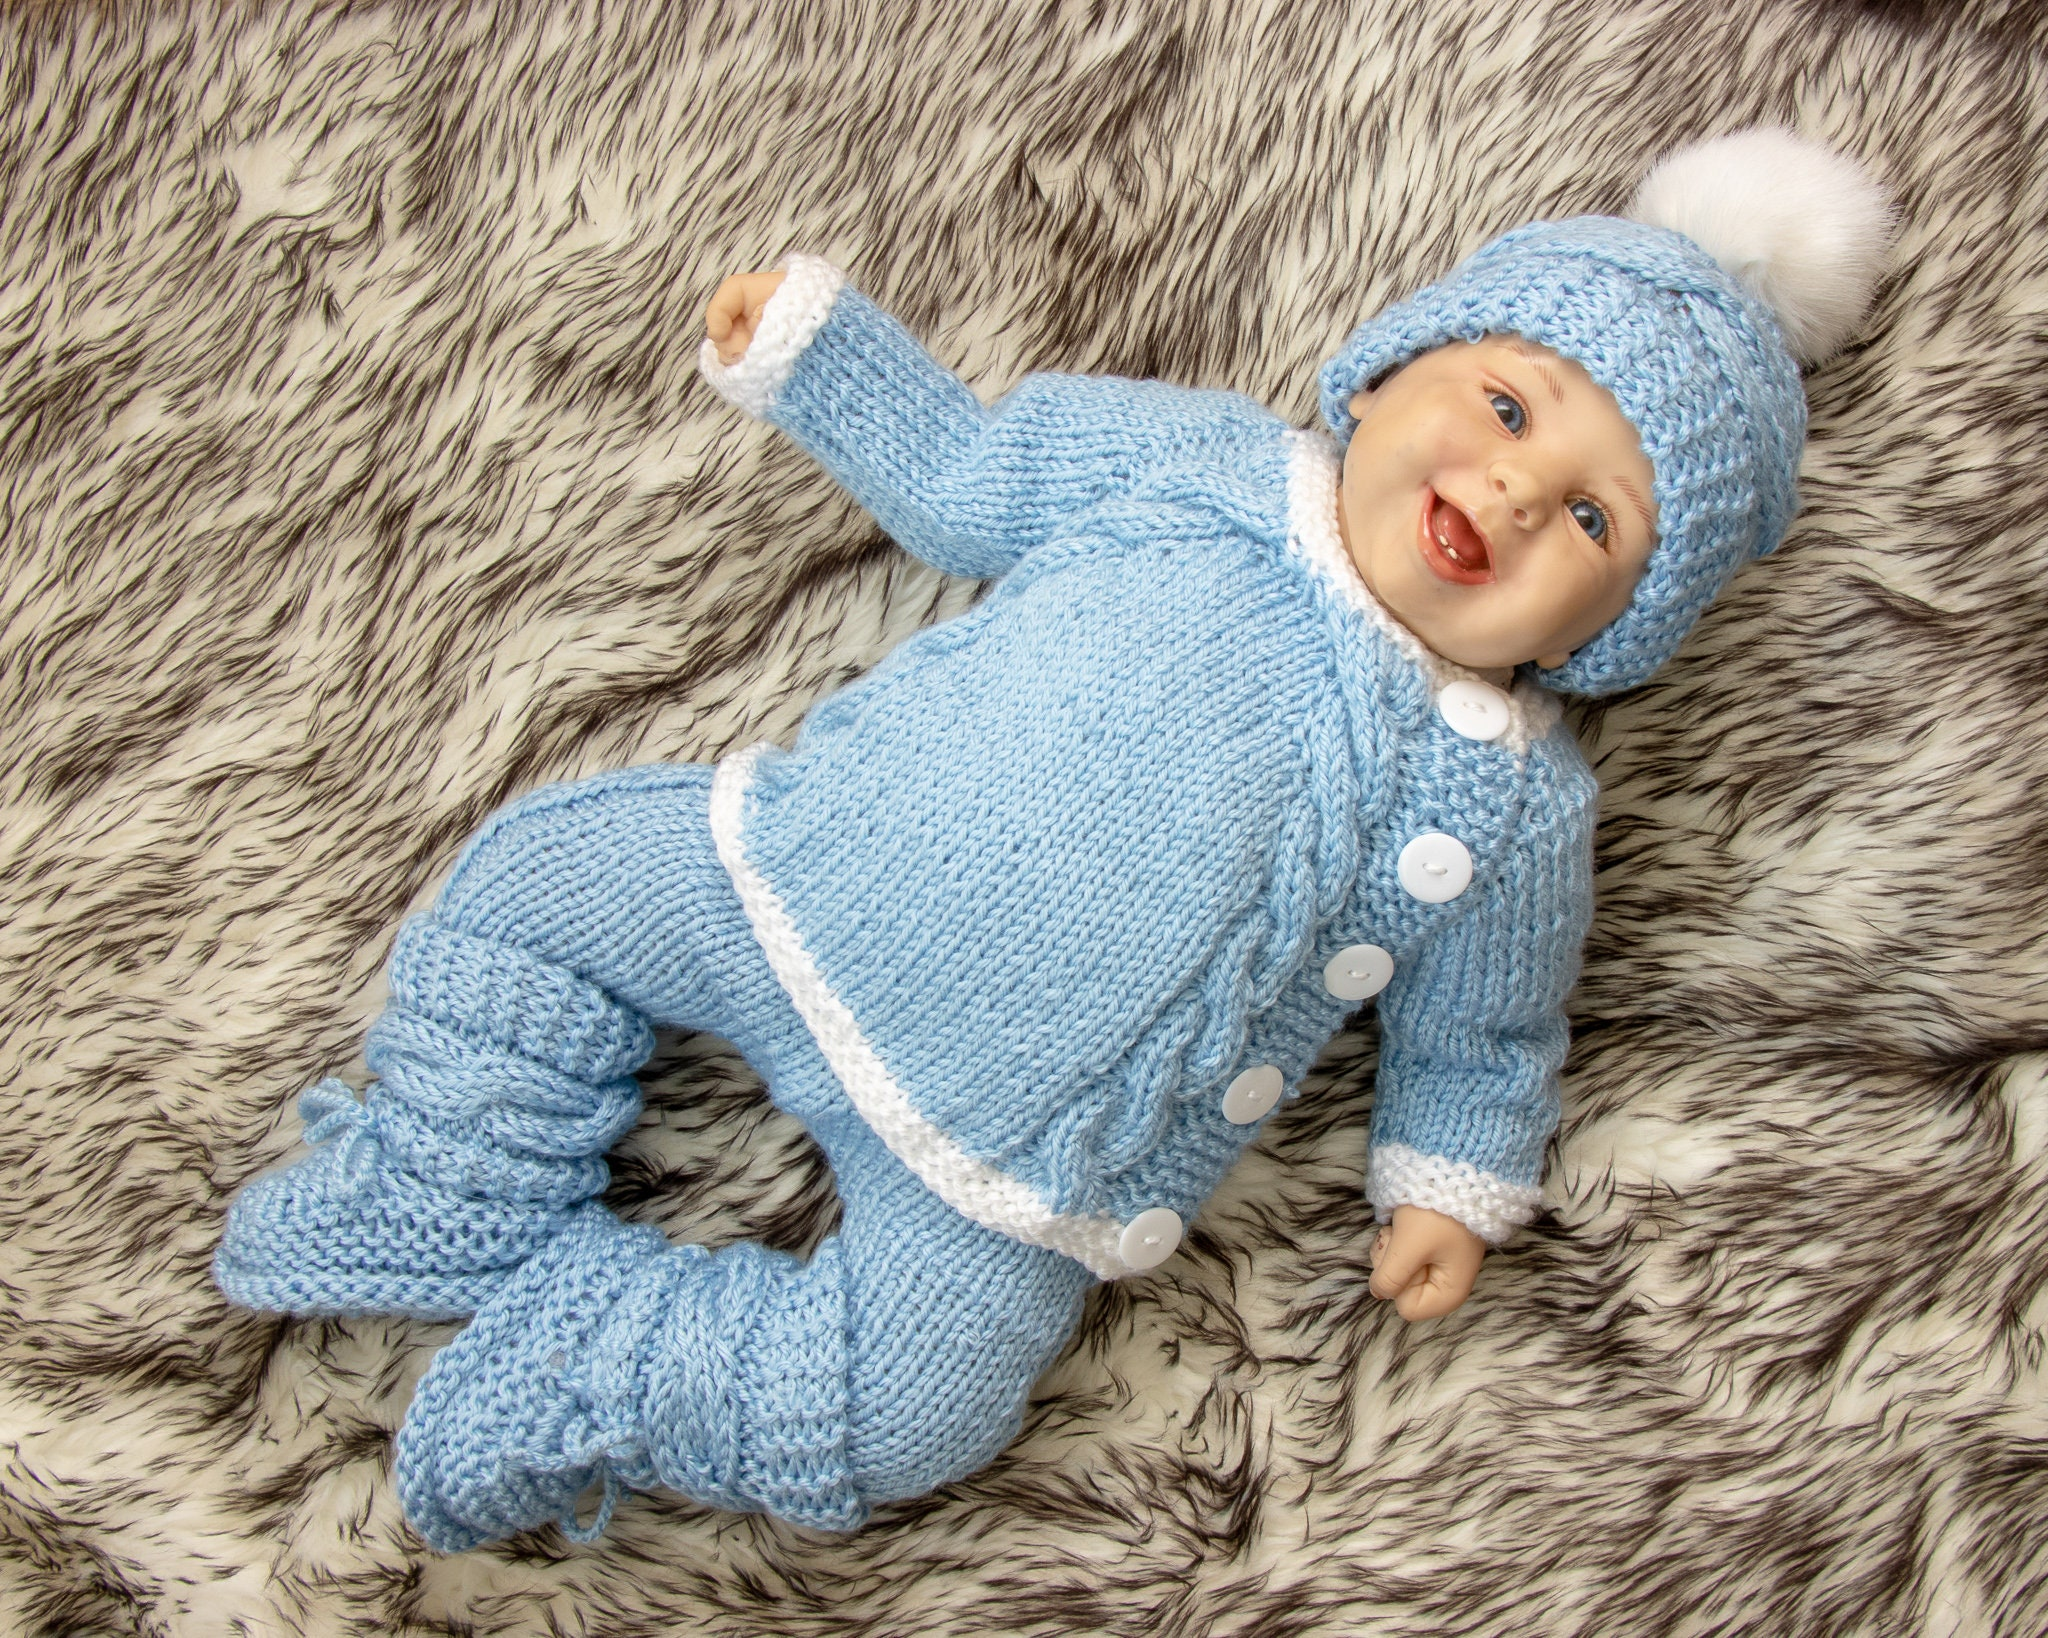 b67fc8d44 Baby boy home coming outfit - Hand knit layette - Knitted Baby Outfit ...